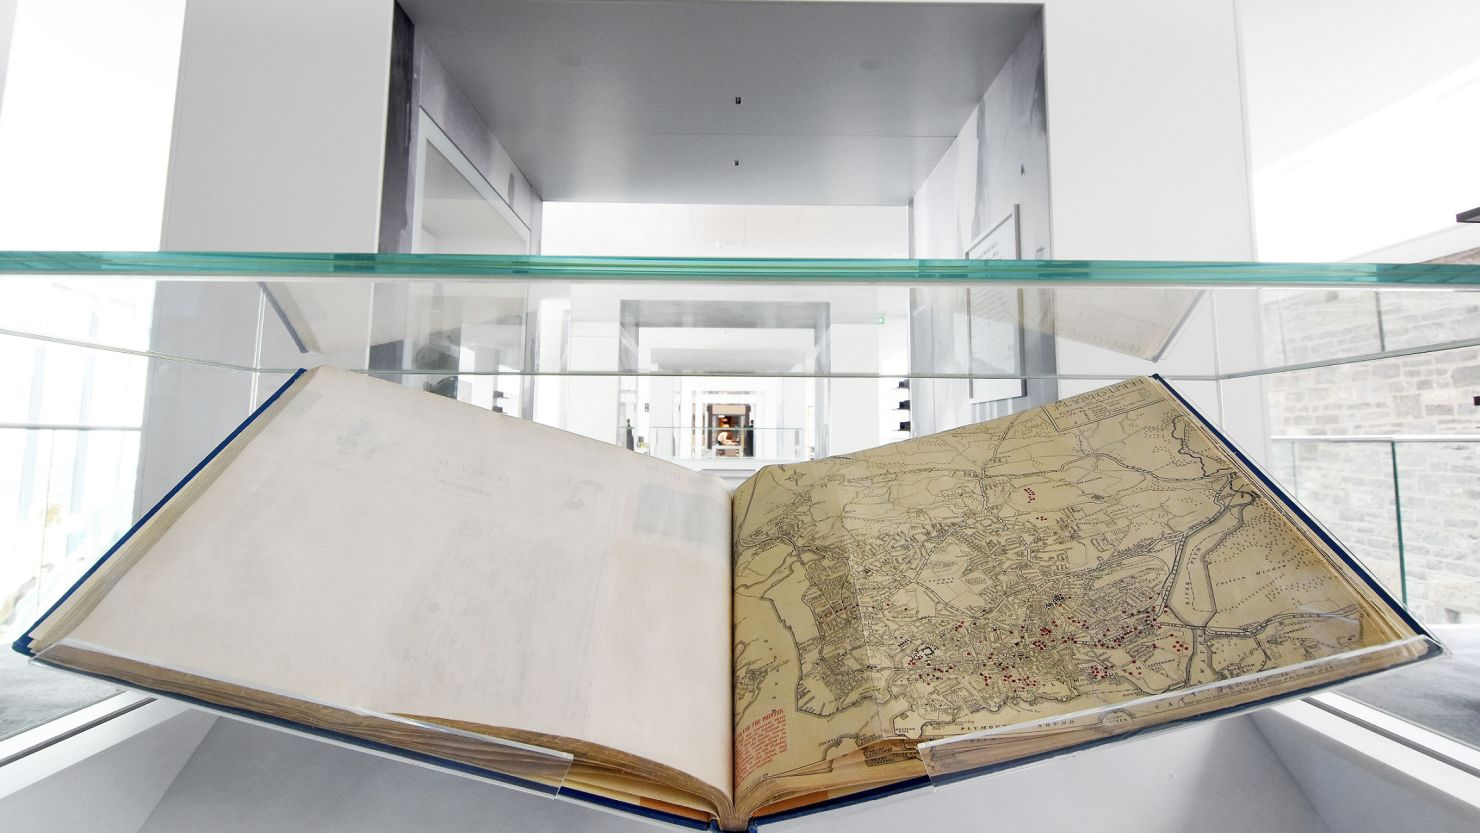 The 'Bomb Book' on display in The Box's 'Active Archives' gallery